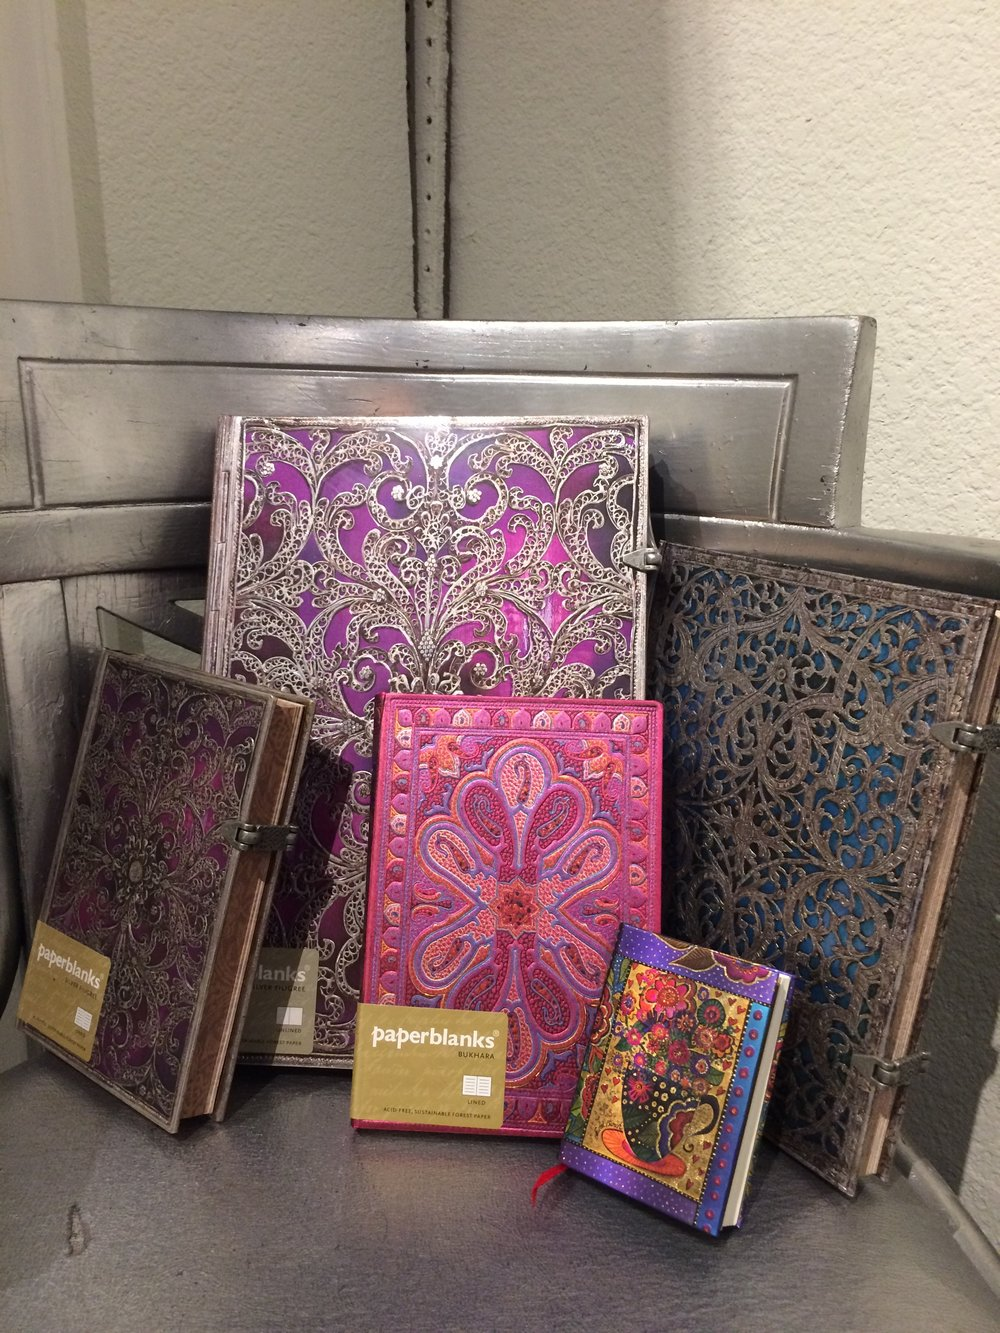 Paperblanks' Journals